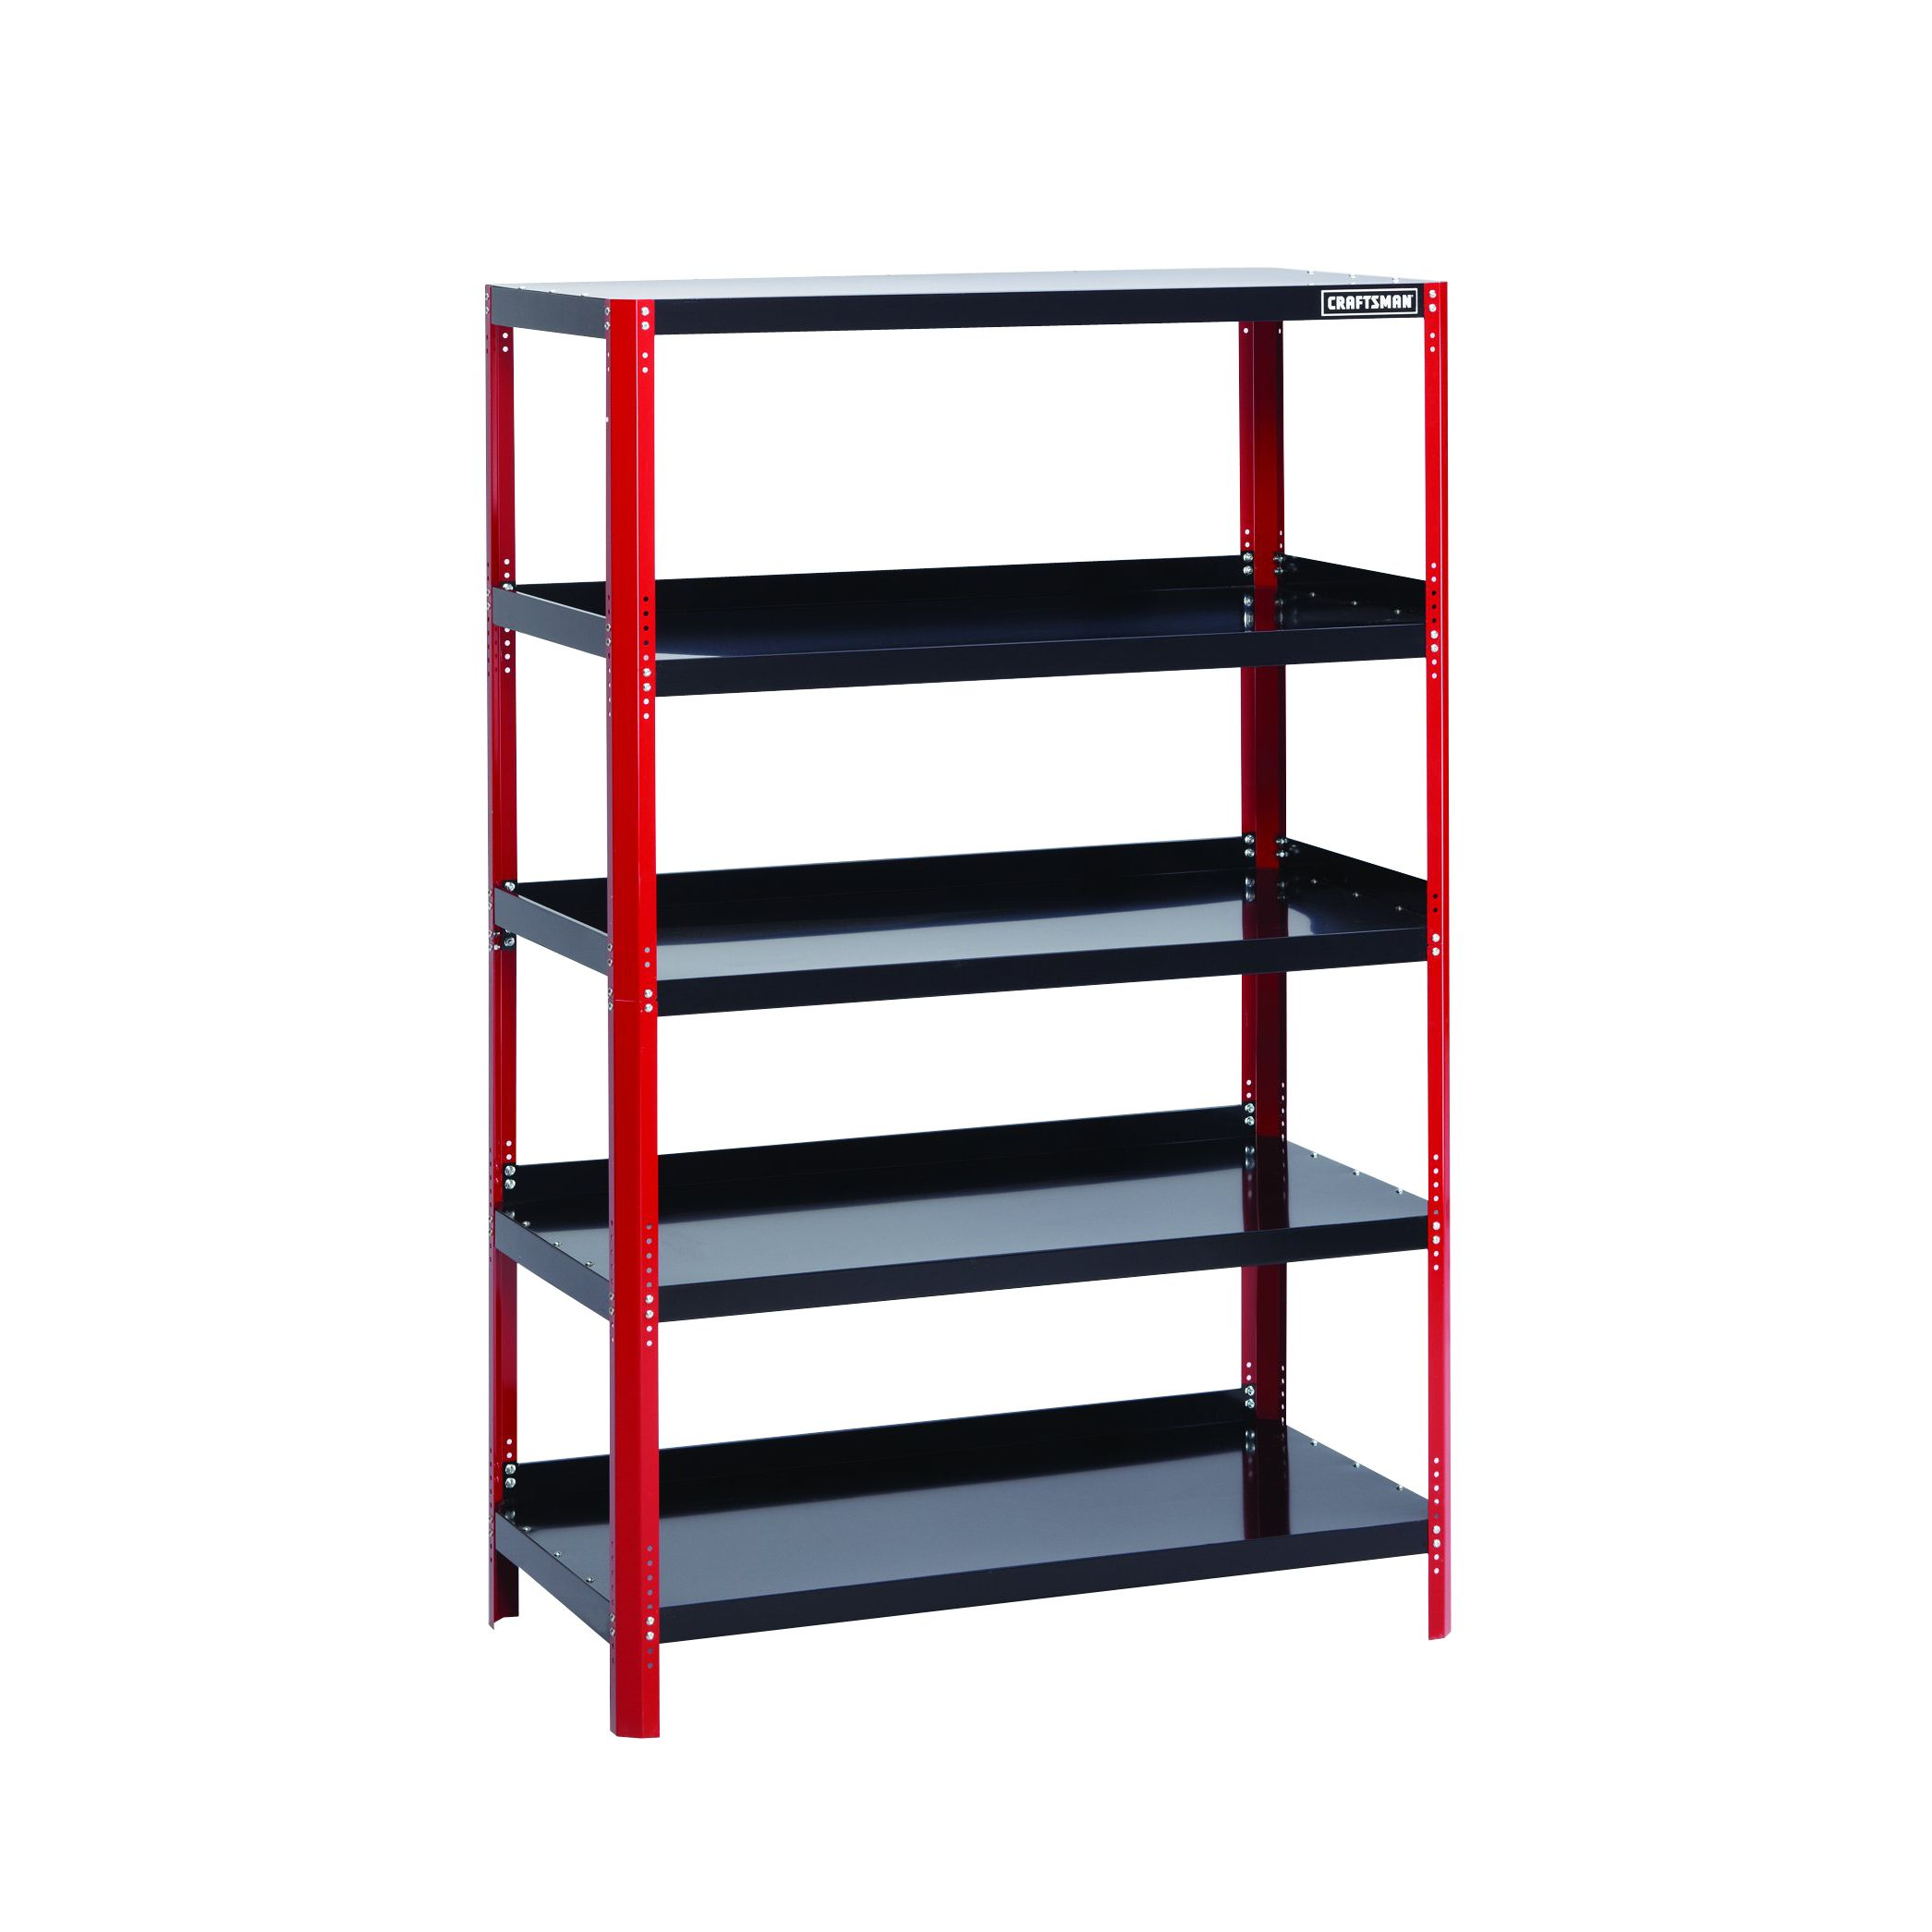 Gorilla Garage Racks Craftsman 48 Quot Wide Steel Shelving Unit Red Black